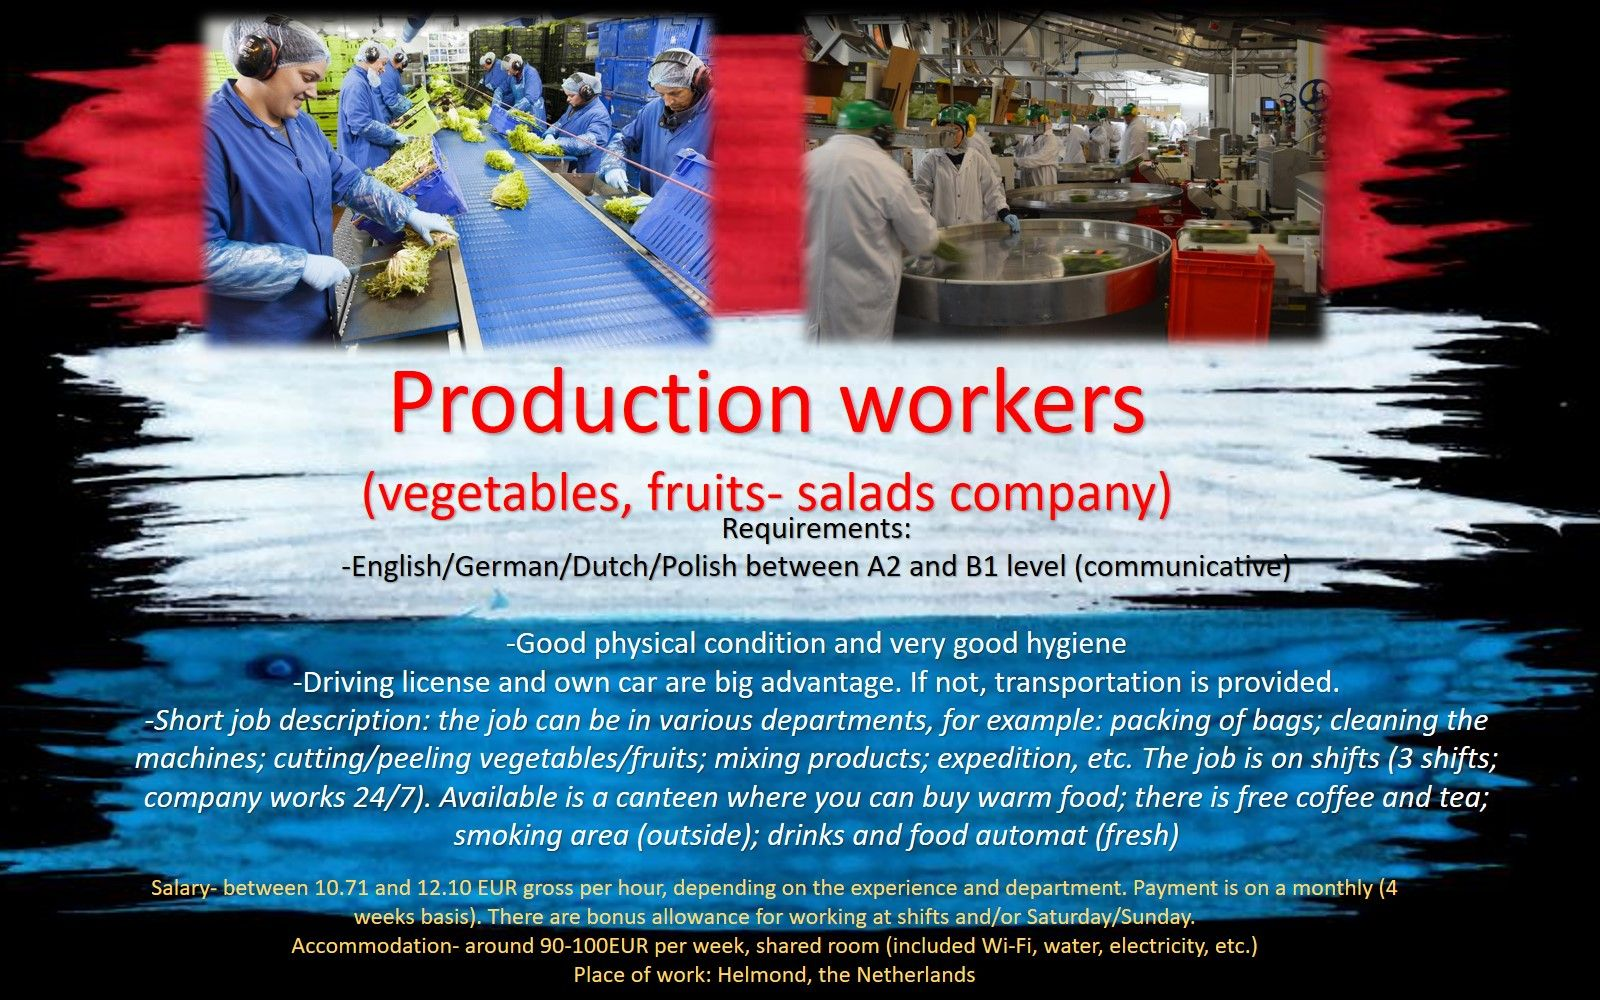 Production workers, factory job, simple work, warehouse, fruit, vegetables, salads. Hessing, Helmond. Holland, Netherlands